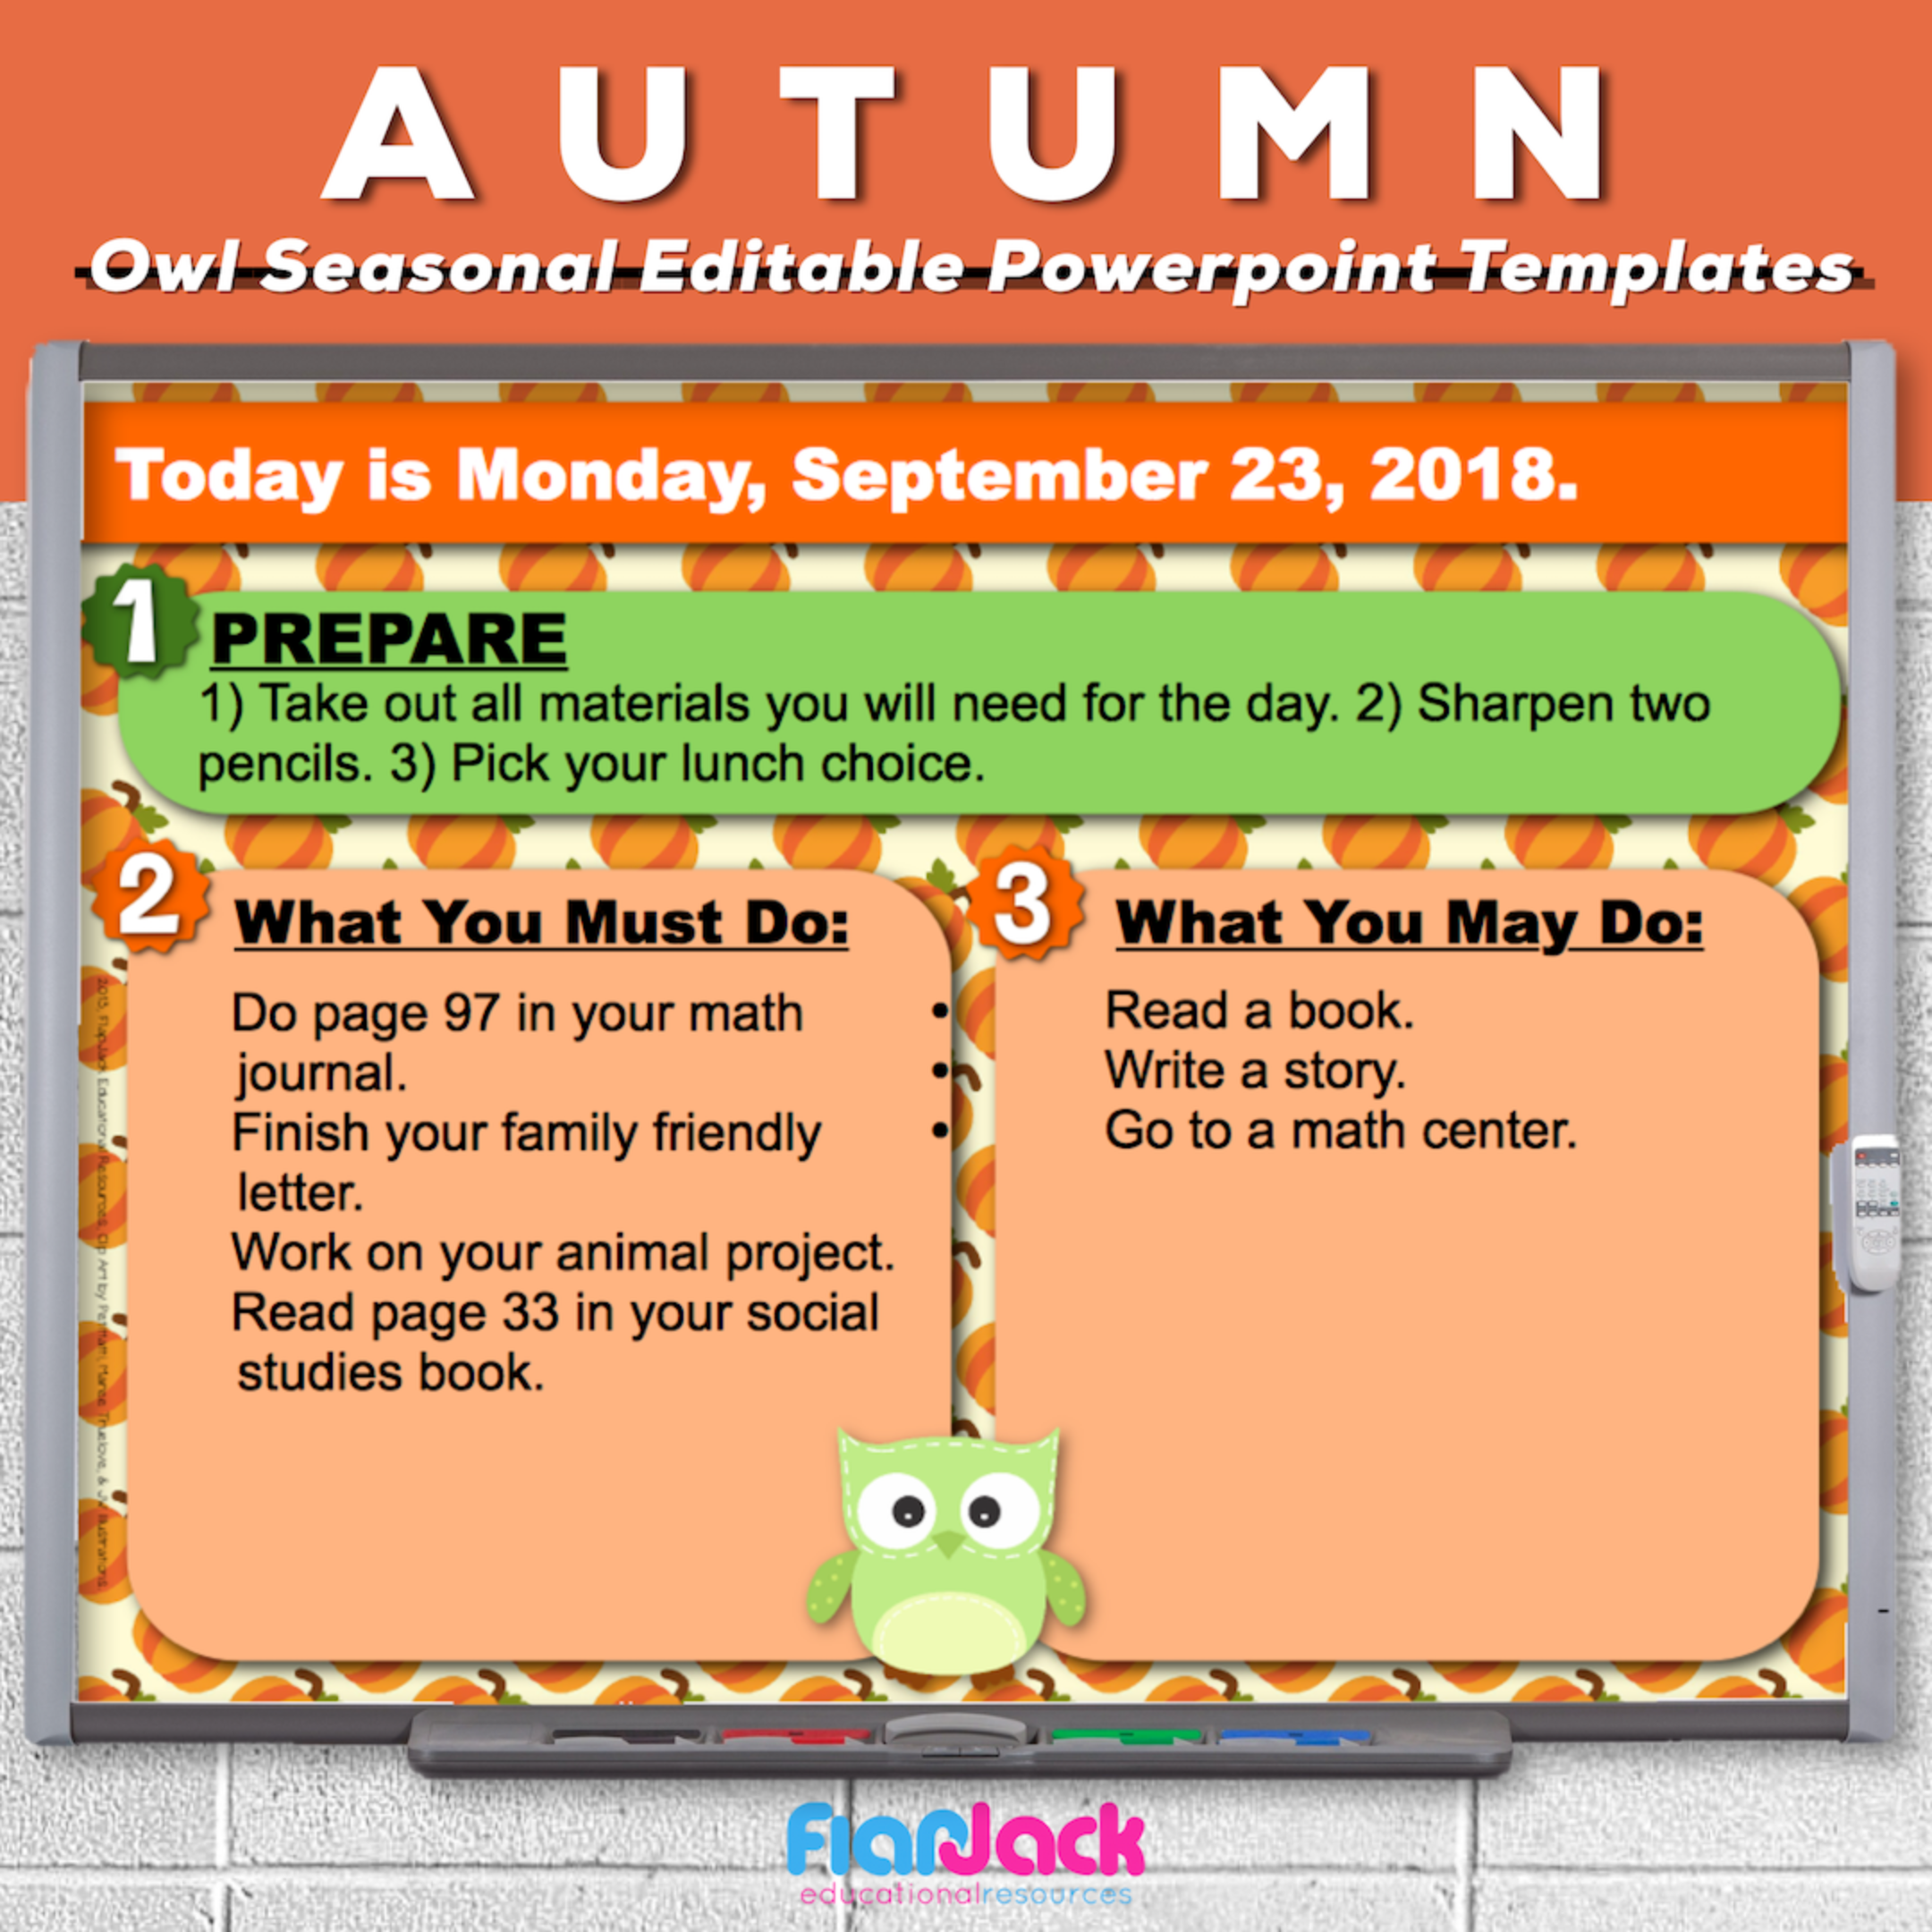 Autumn Owl Editable PowerPoint Templates